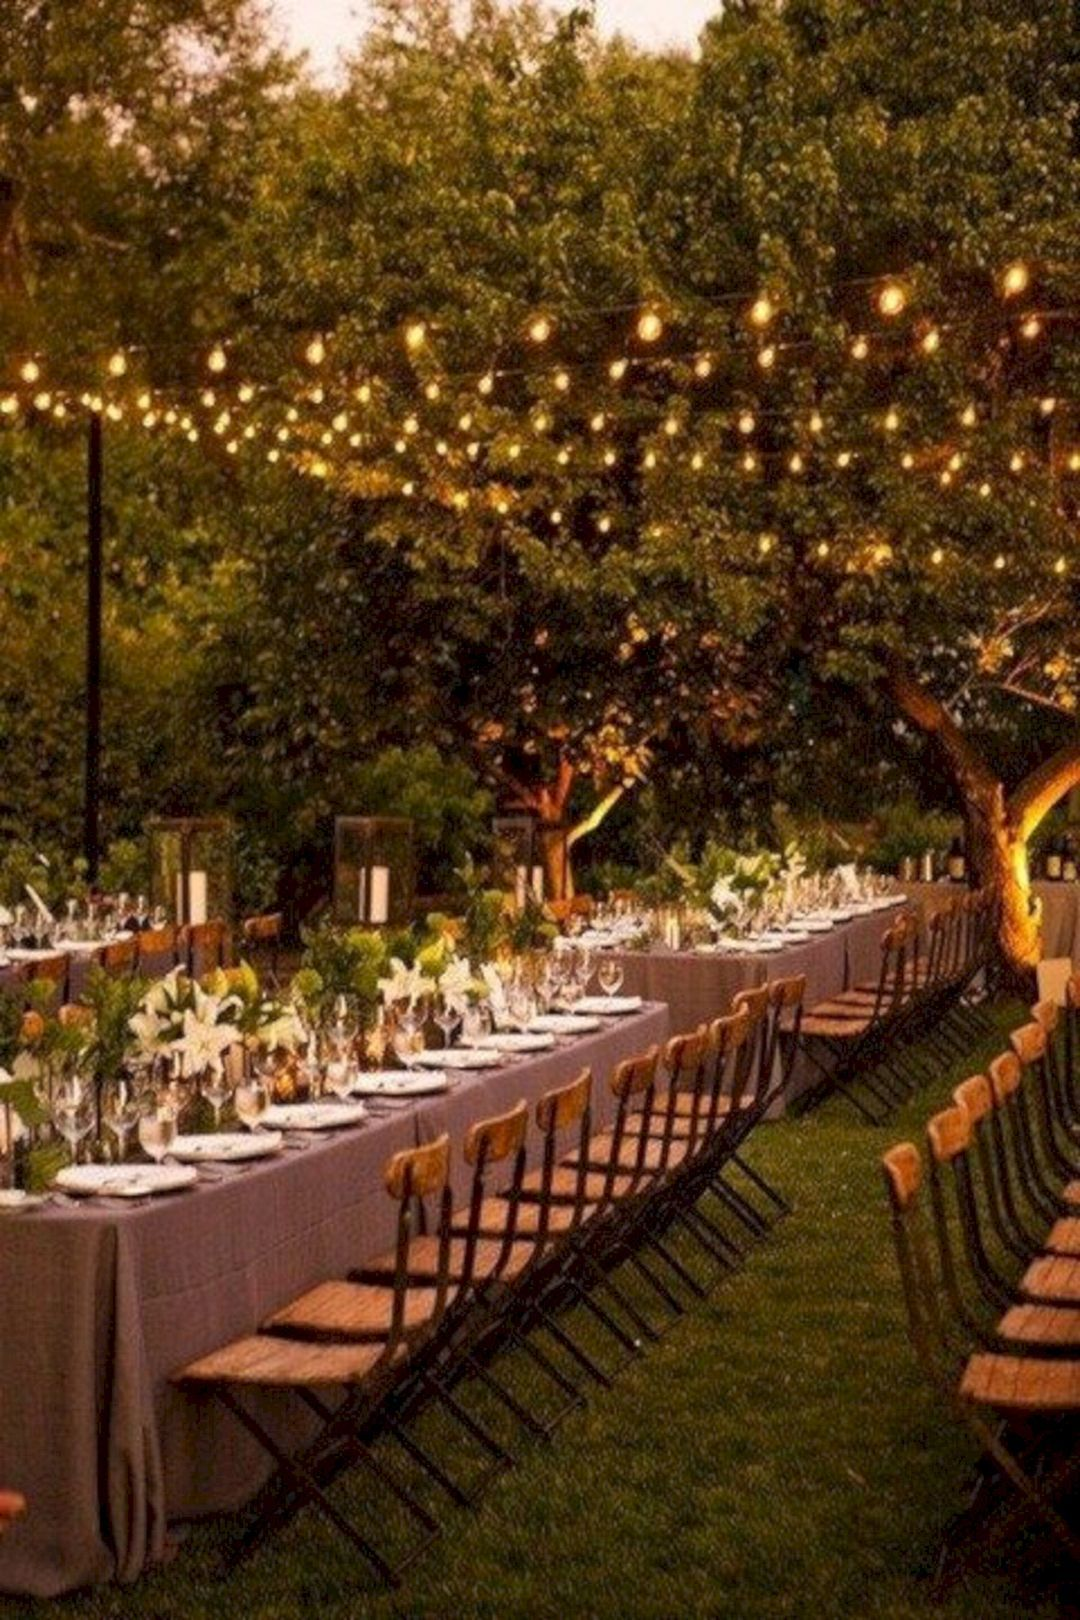 outdoor night lights on 23 elegant outdoor wedding lighting design ideas for fantastic wedding party outdoor wedding lighting outdoor night wedding wedding backyard reception 23 elegant outdoor wedding lighting